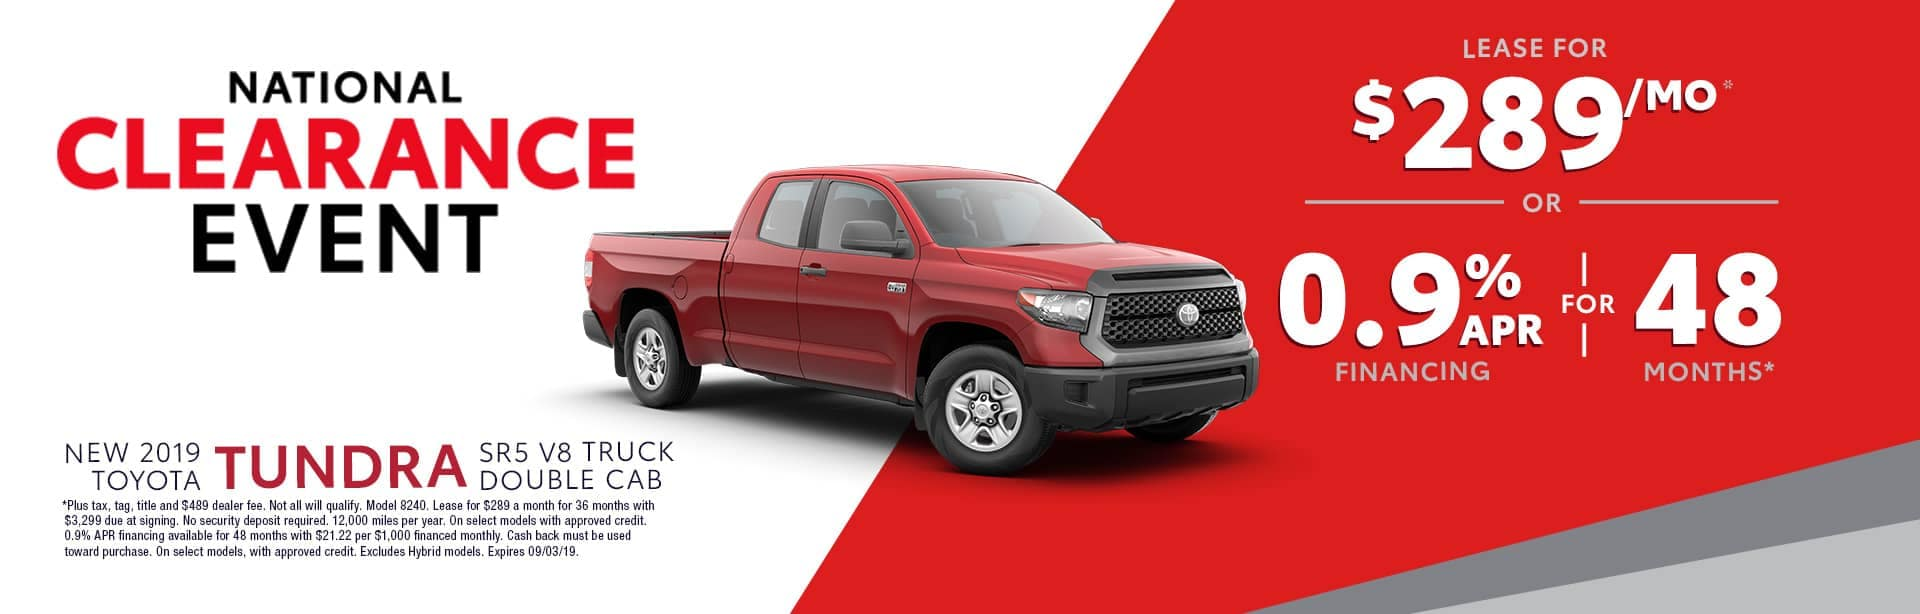 Homepage Aug Offer Toyota Tundra